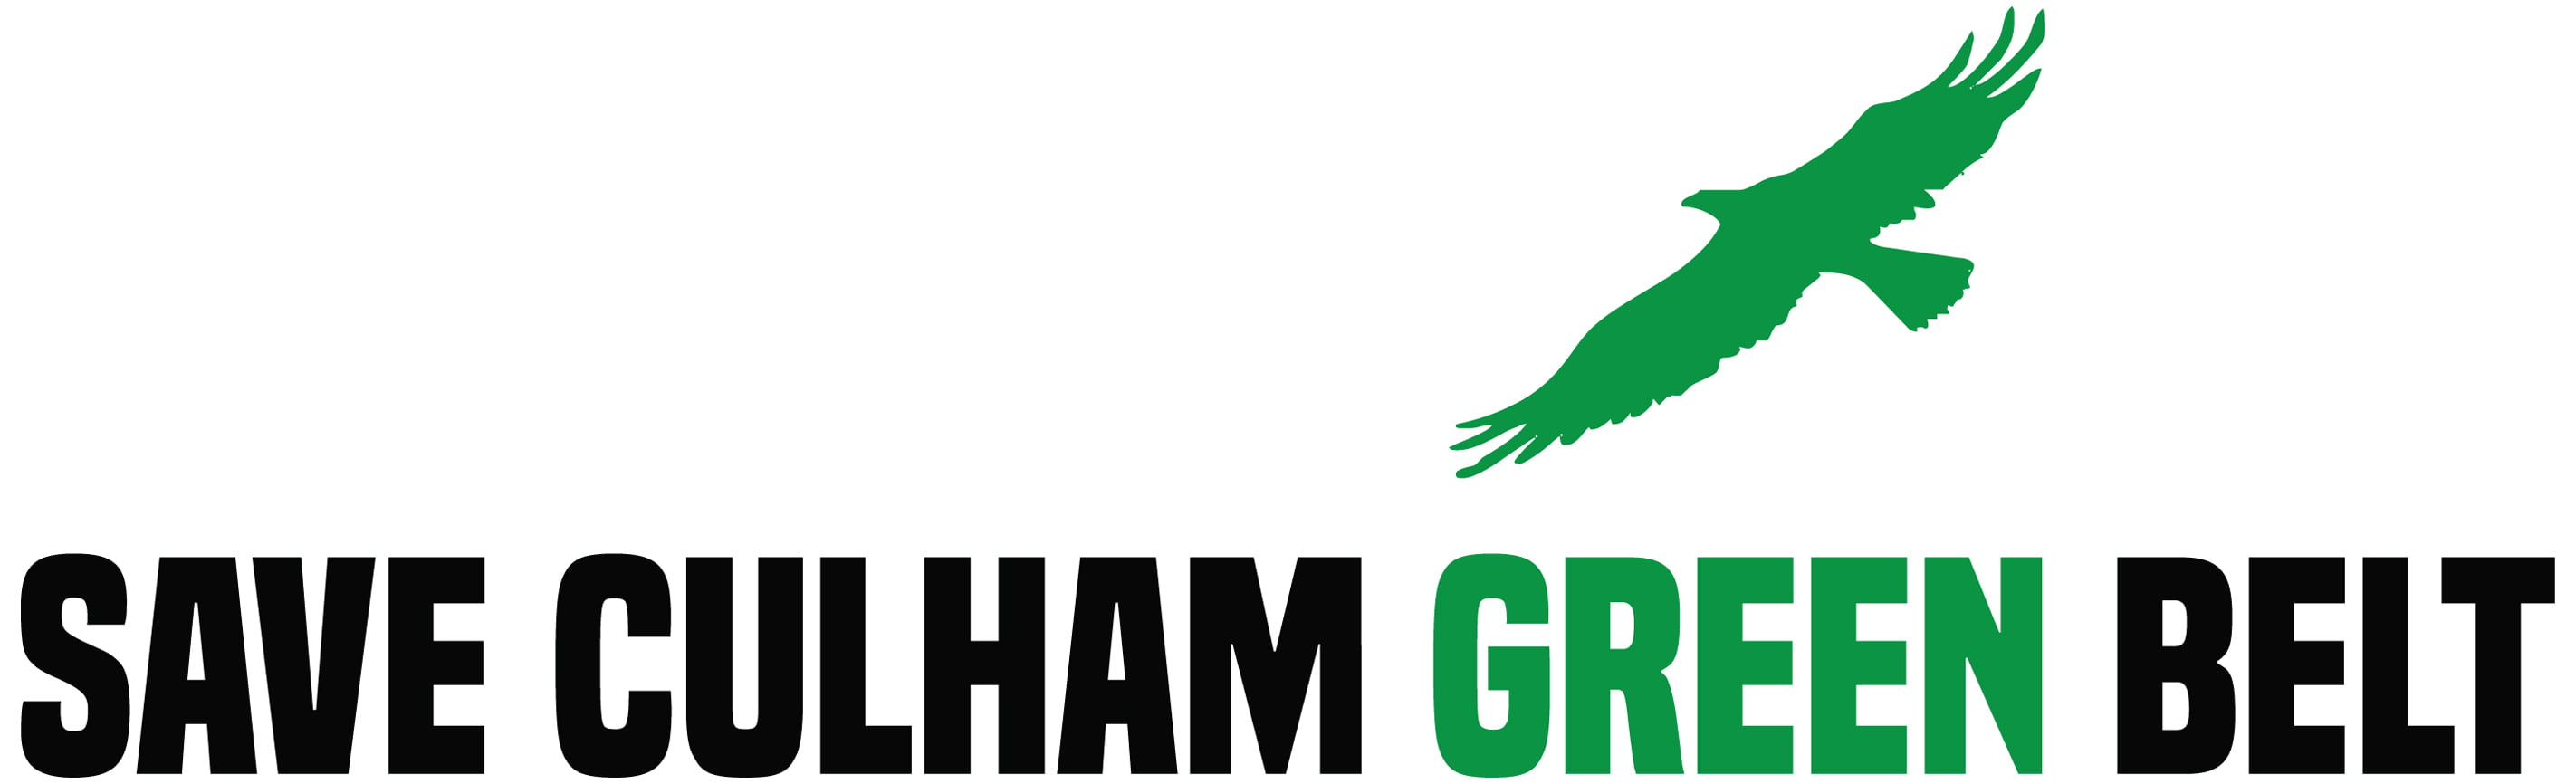 Save Culham Green Belt